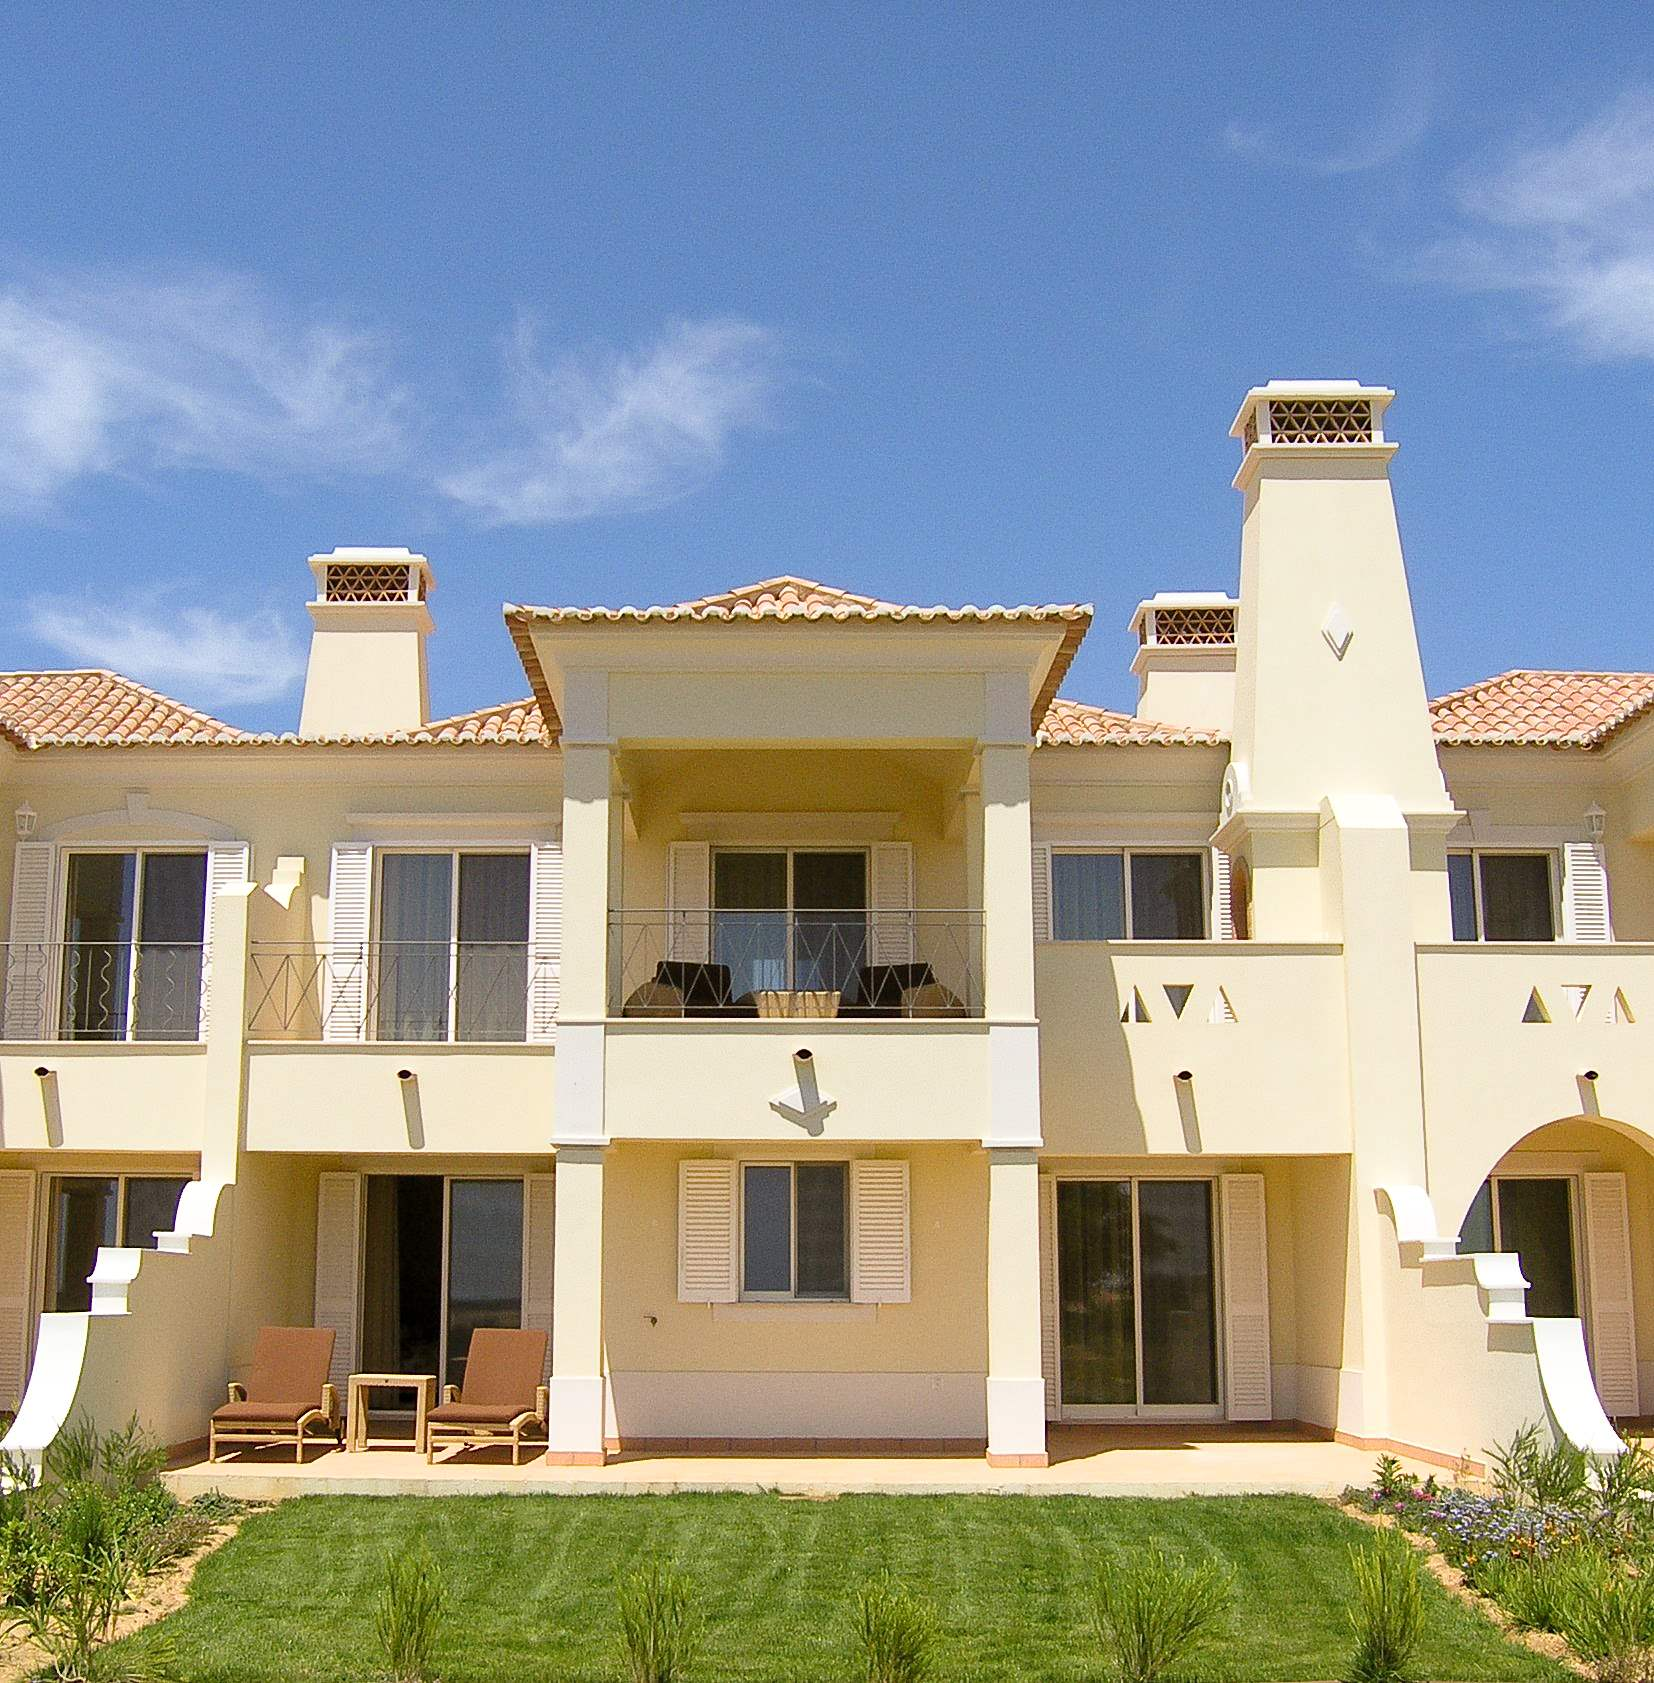 Martinhal Vilas Mimosa Two Bedroom, 2 bedroom villa in Martinhal Sagres, Algarve Photo #2